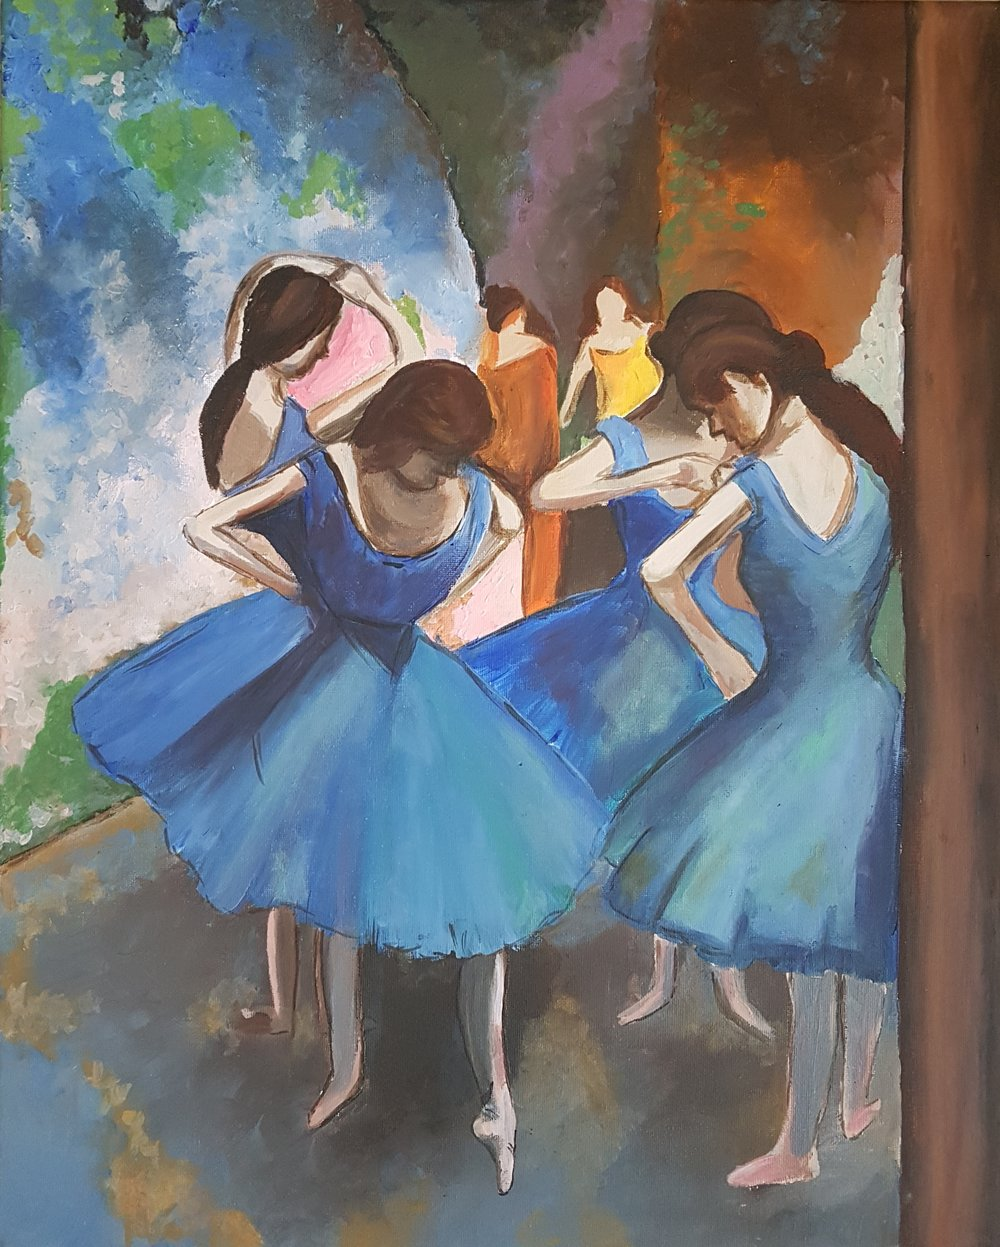 Dancers in Blue by Degas